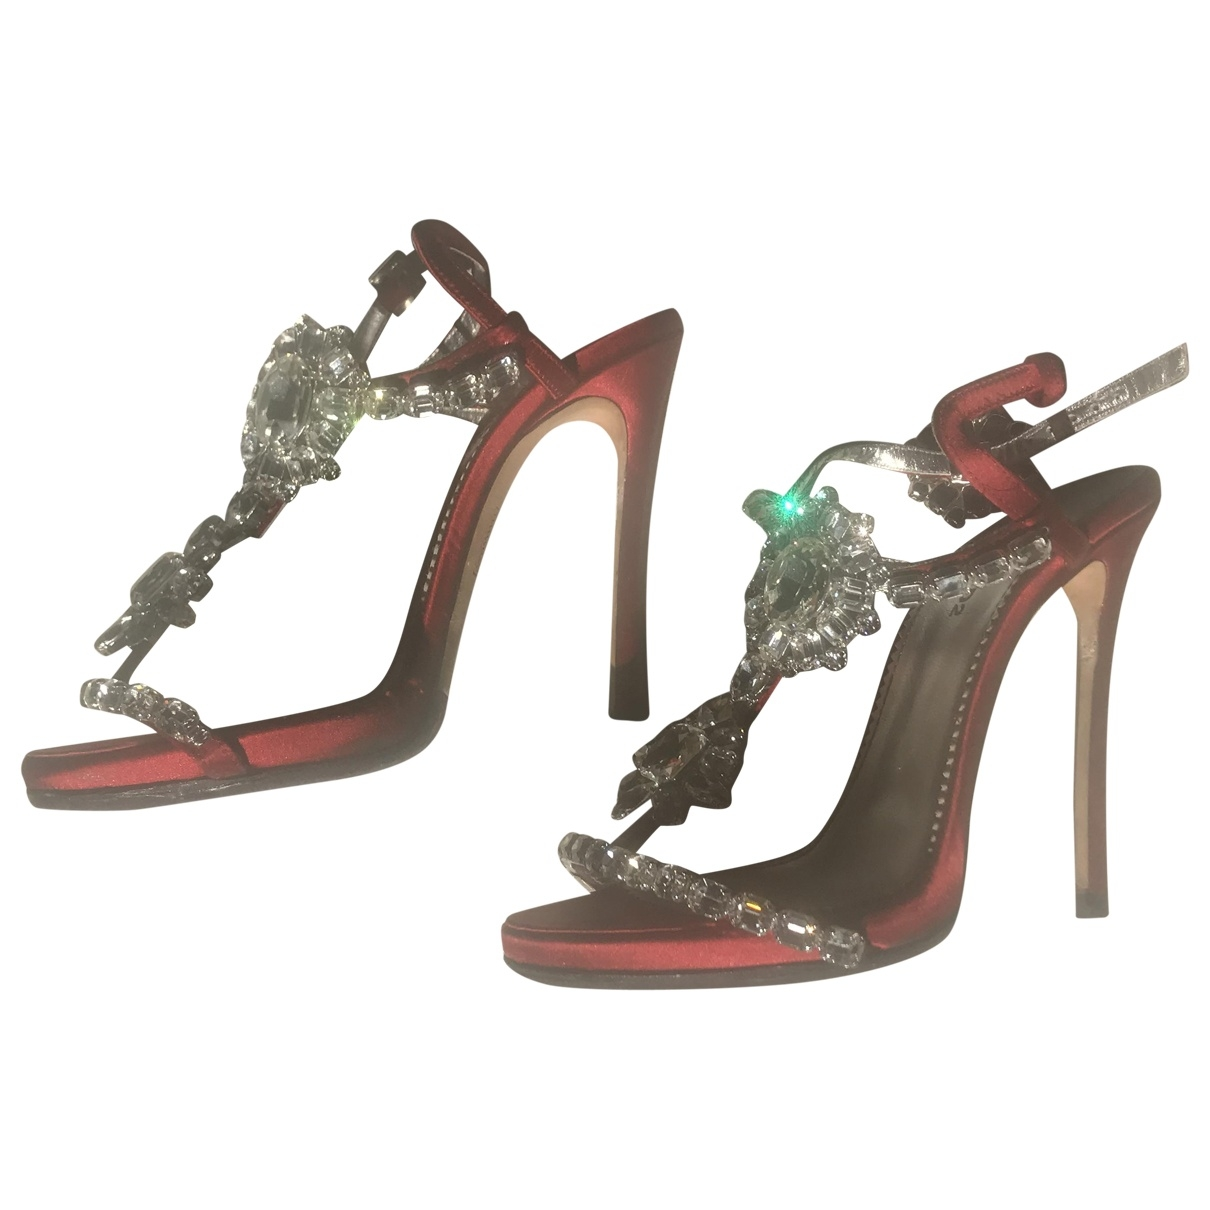 Dsquared2 \N Burgundy Leather Sandals for Women 37 EU